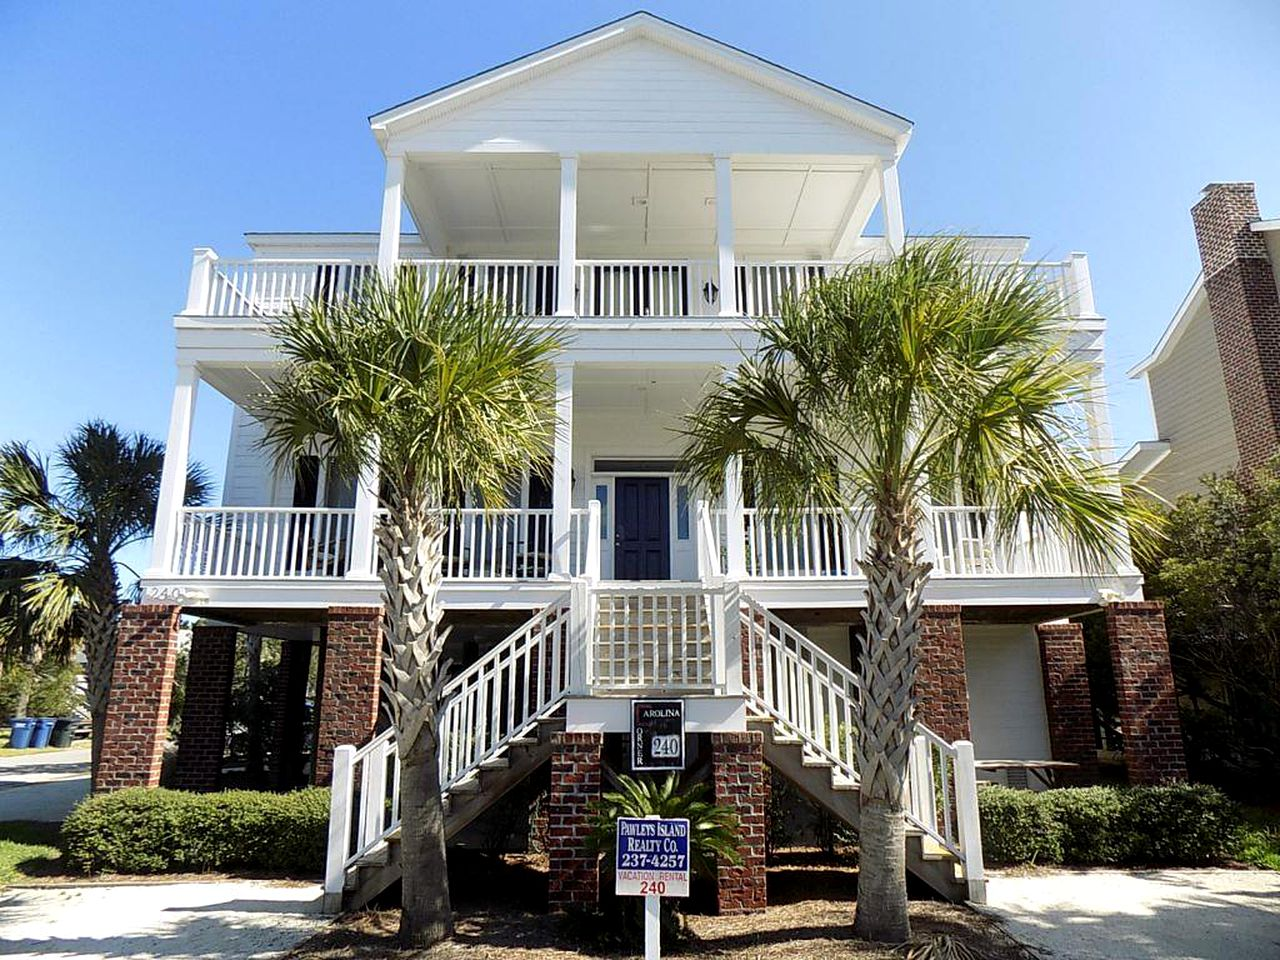 Beach Houses (Pawleys Island, South Carolina, United States)